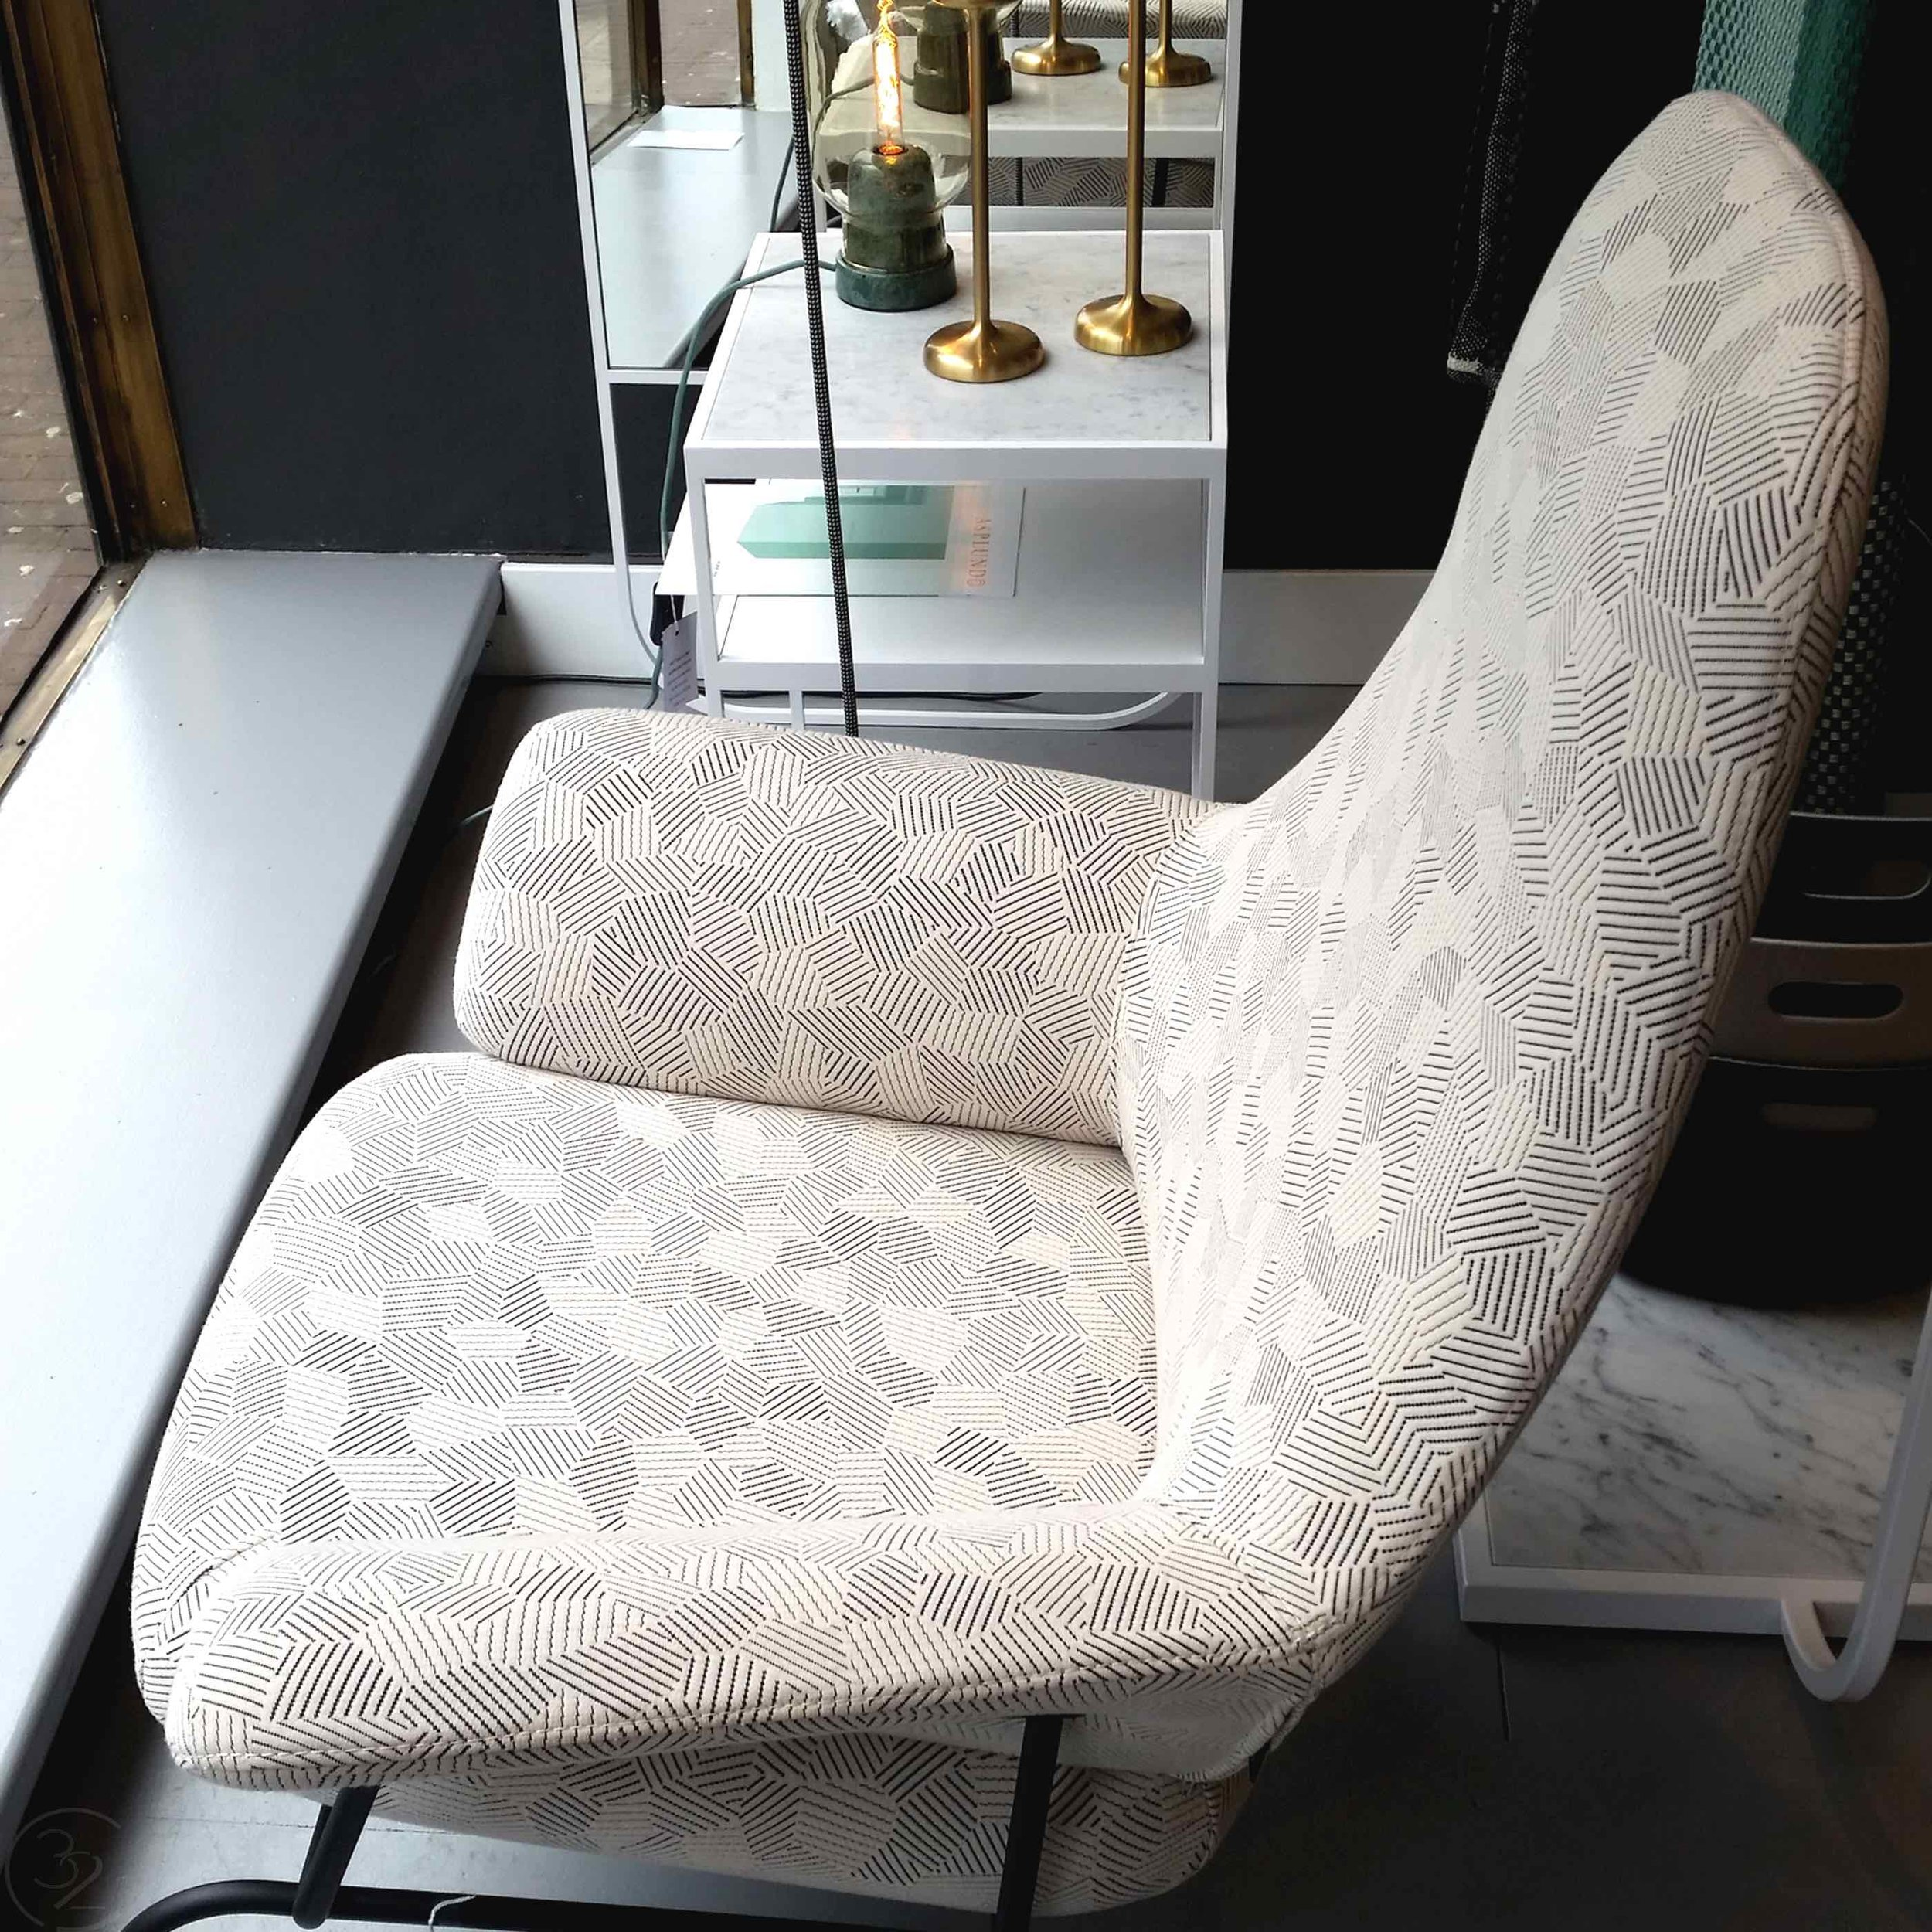 The Nordic New Modern Occasional Chairs with a Funky Edge ...